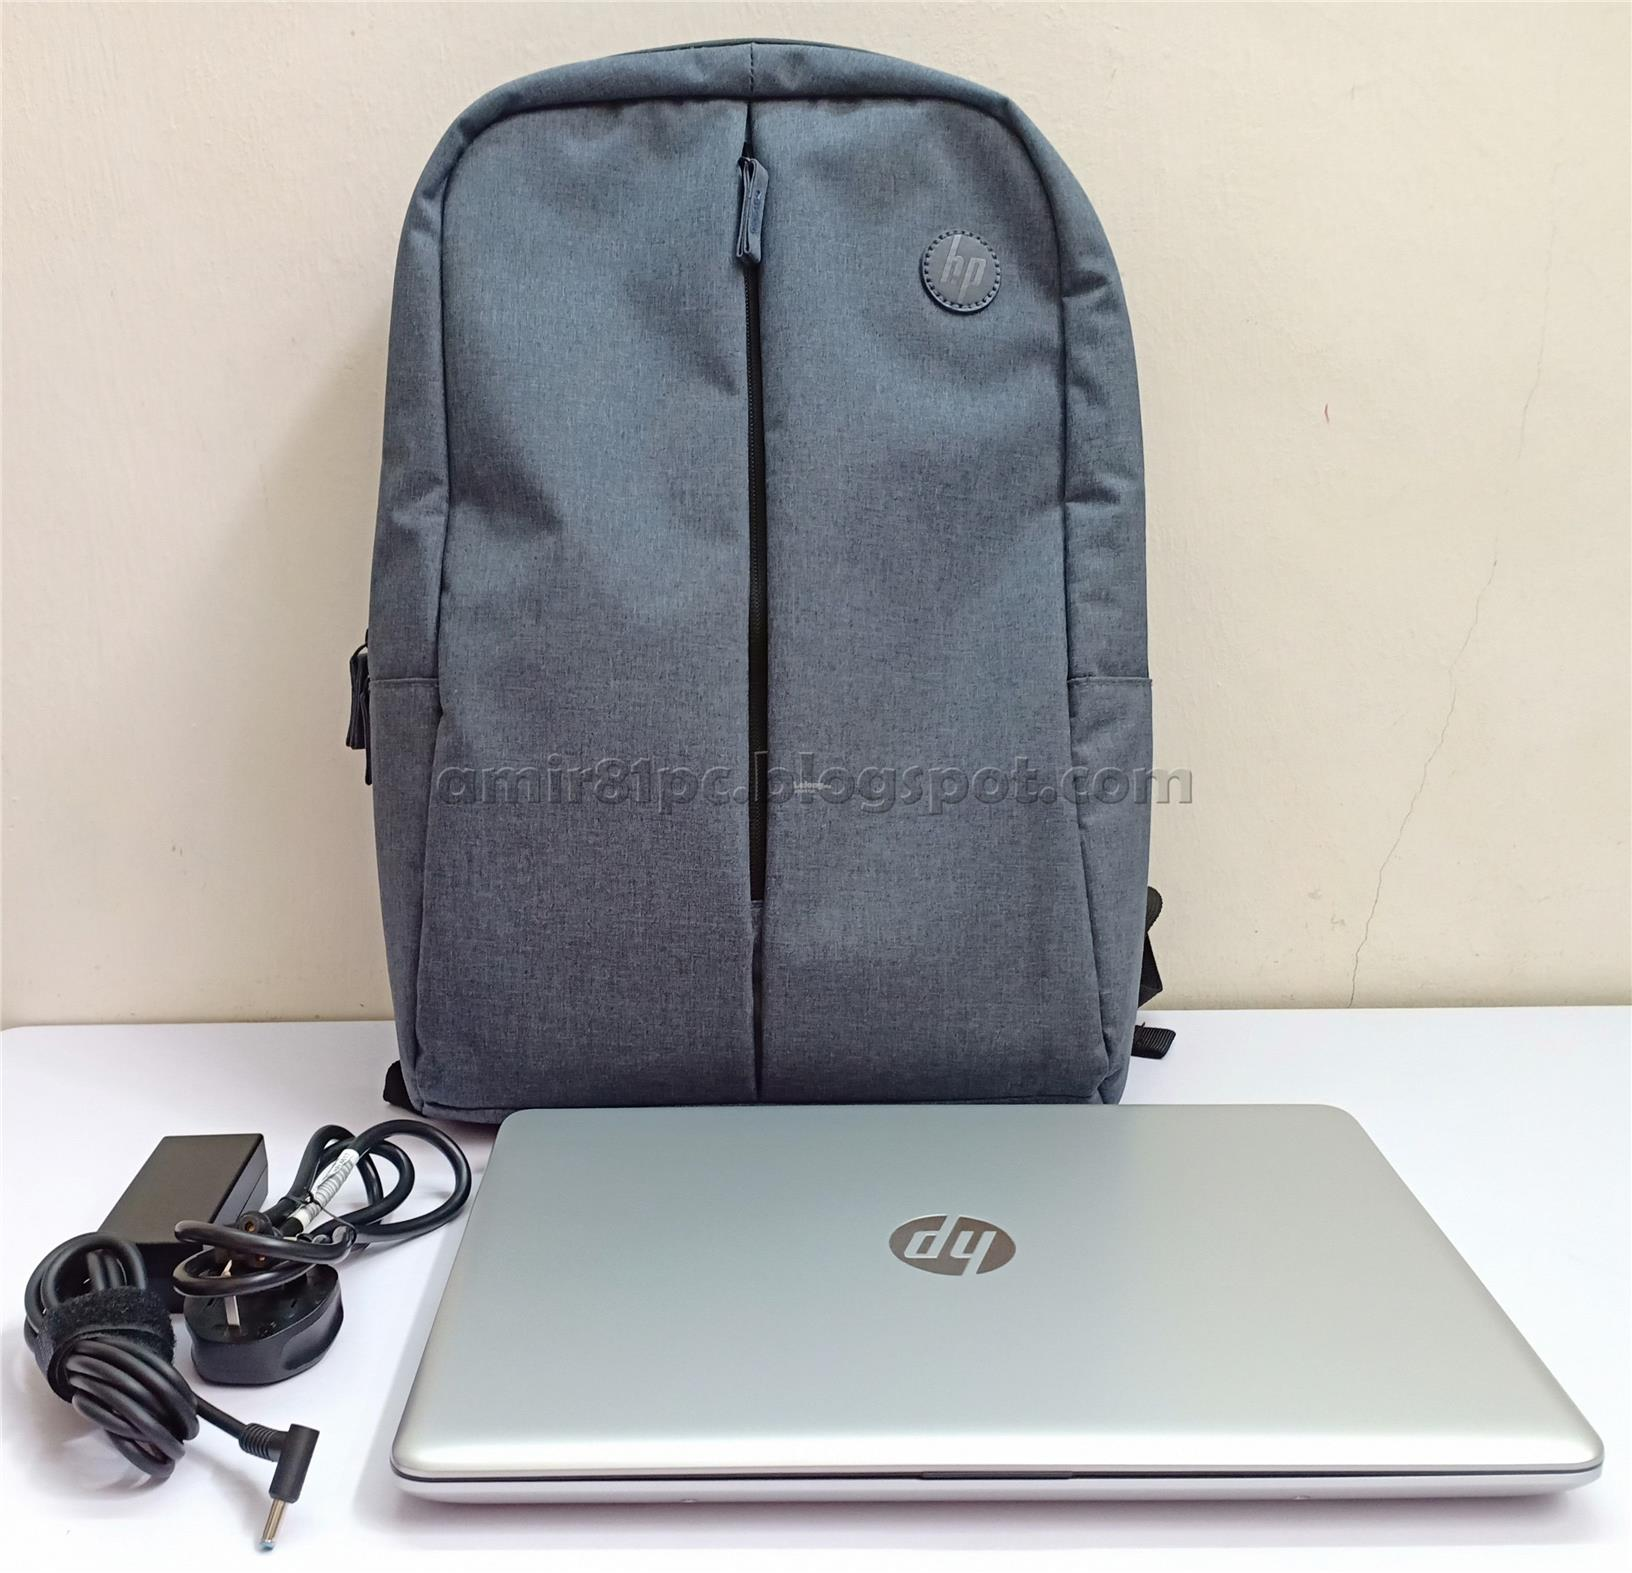 HP 14-bs724TU 6th Gen Core i3 / Warranty till APR 2019